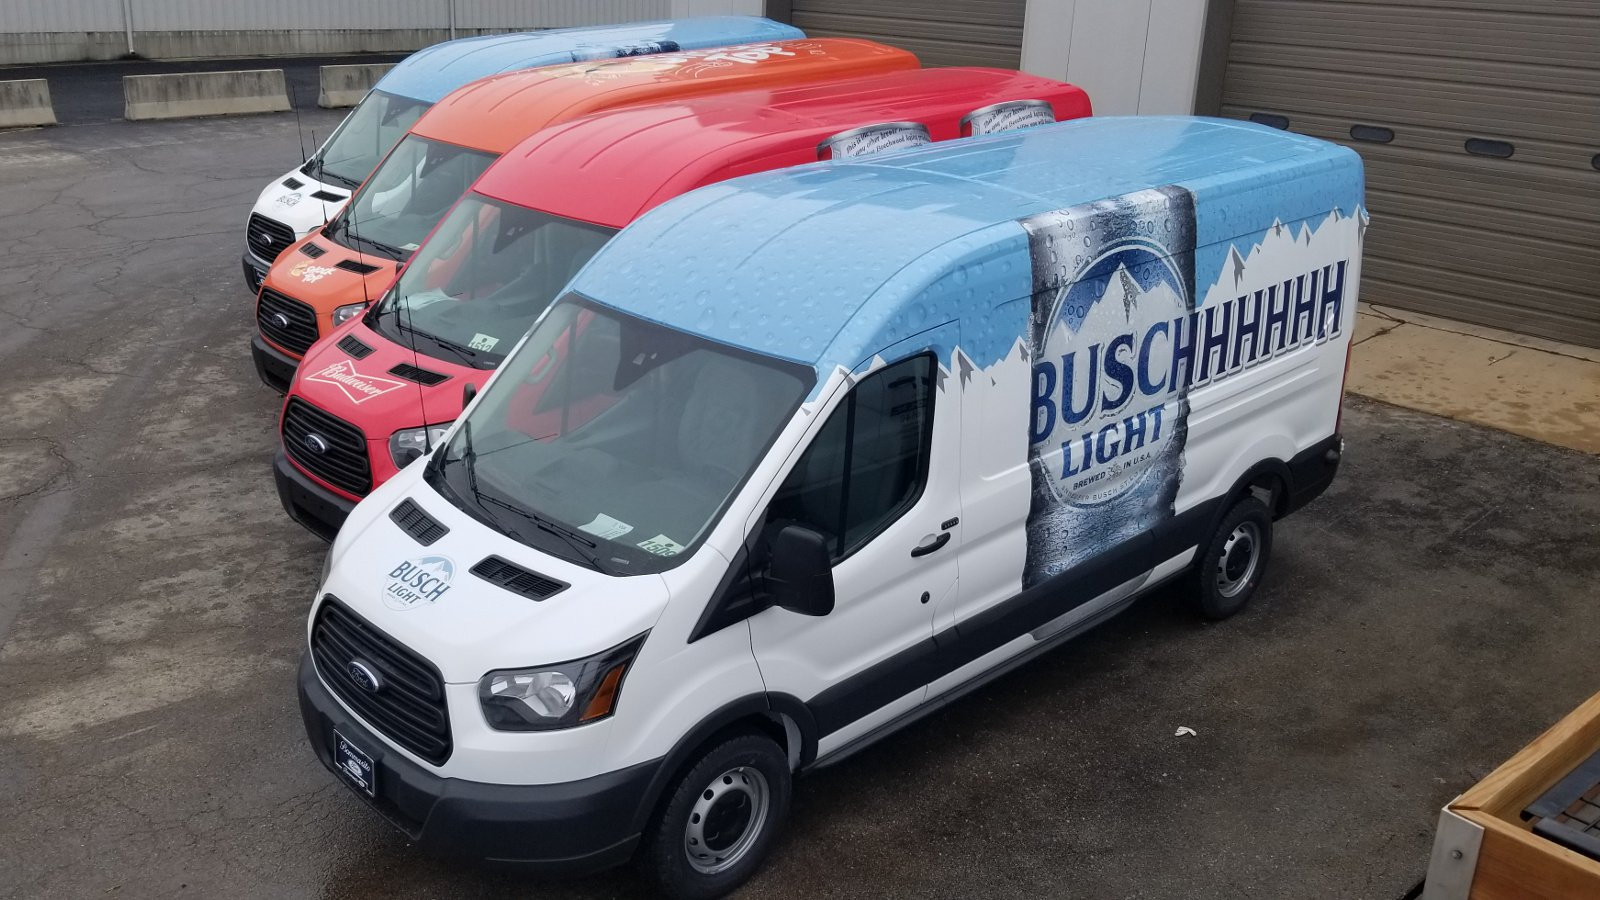 Commercial Vehicle Wraps: Do They Wrap The Roof?